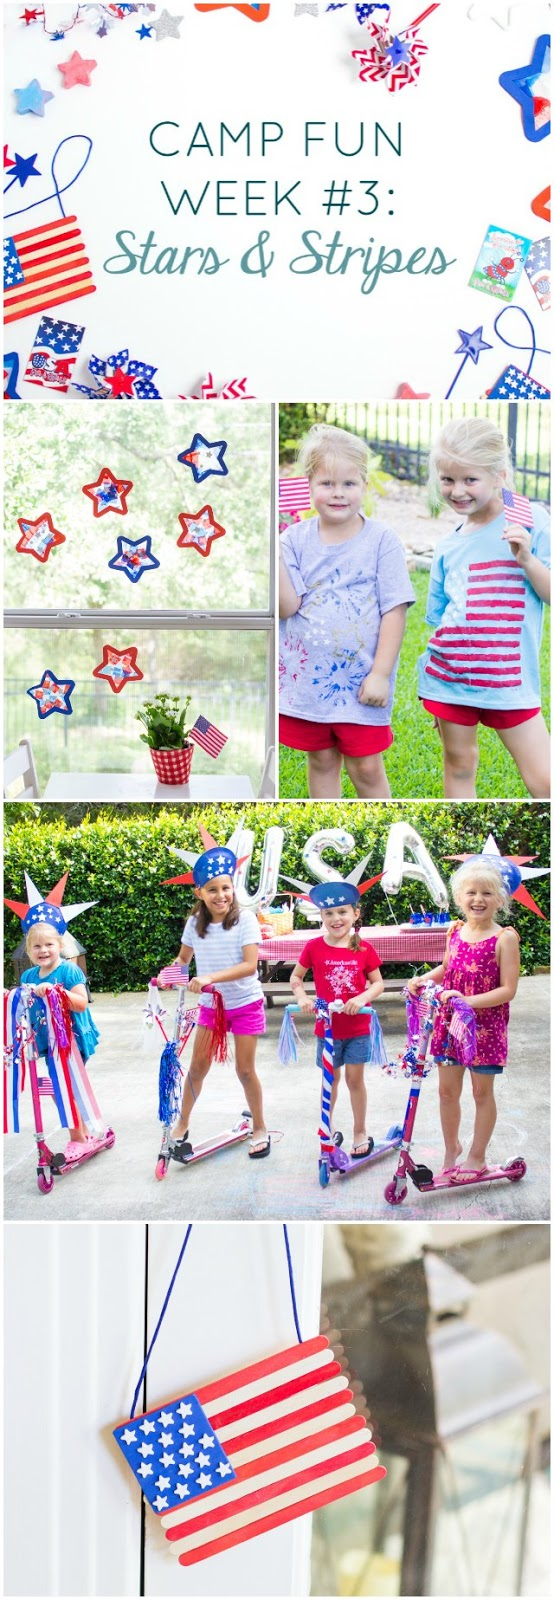 "Camp Fun ""Stars and Stripes"" Week - check out these patriotic crafts and activities for summer camp at home with your kids!"